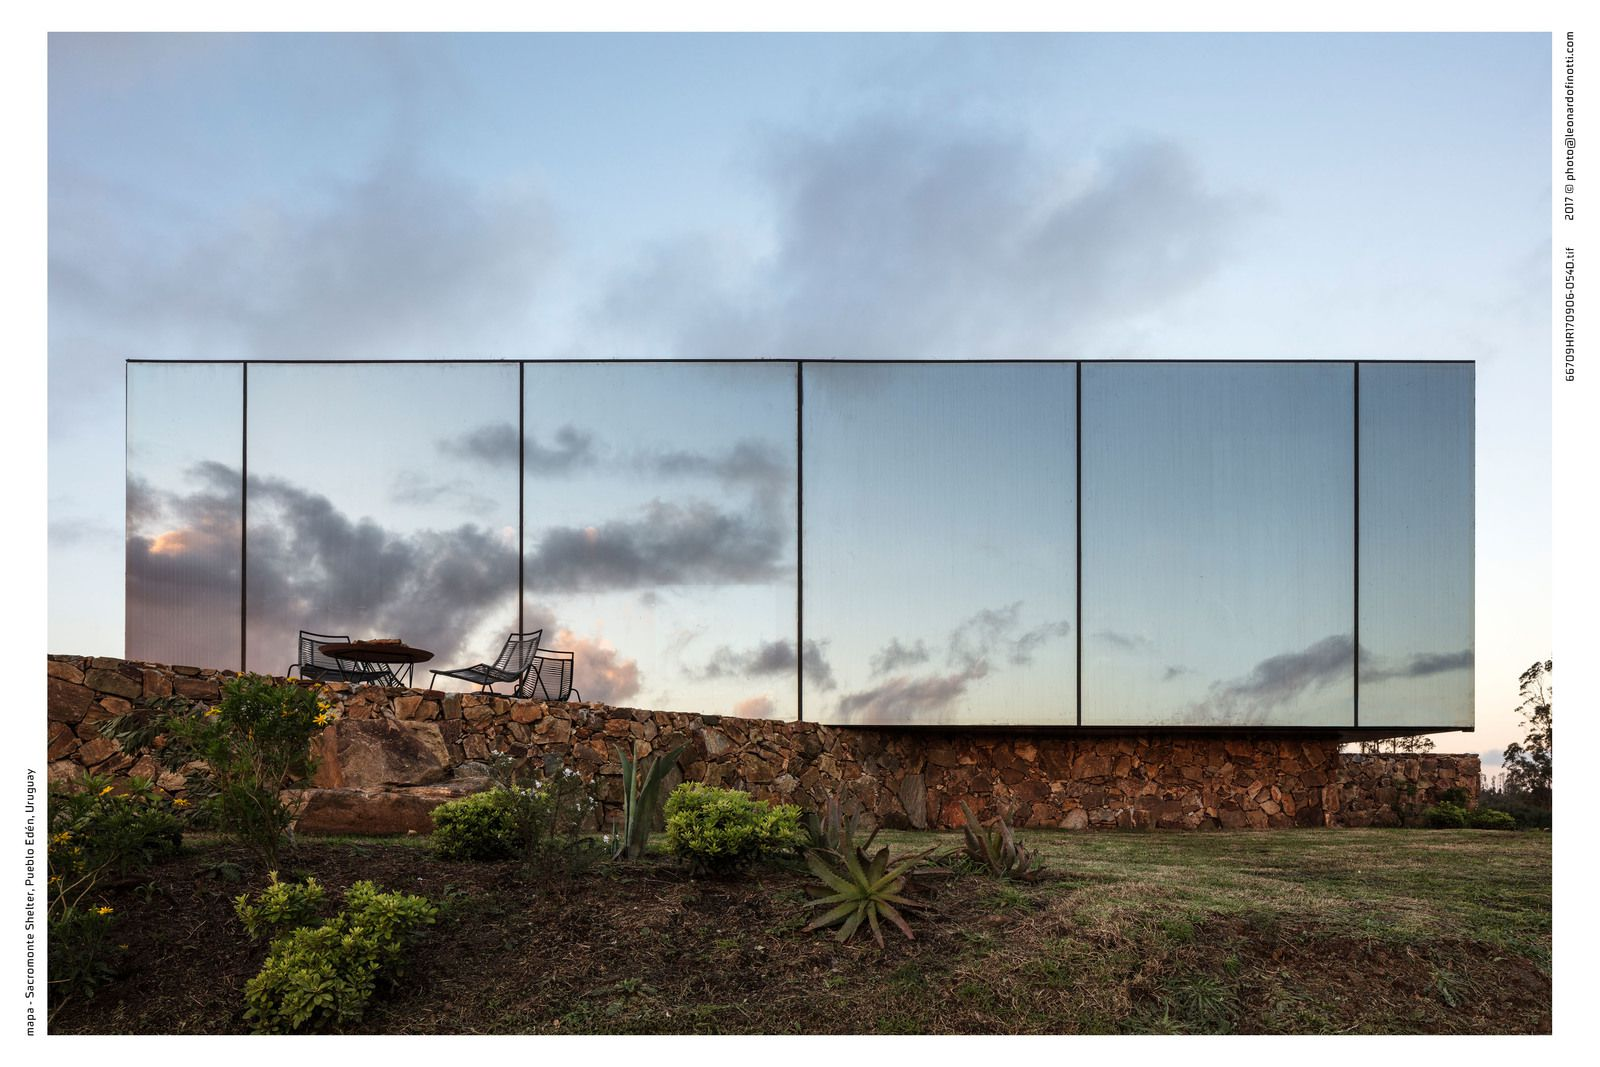 A NEW HOTEL EXPERIENCE, A SHELTER AS AN INVITATION TO APPROACH THE WORLD OF WINES IN URUGUAY